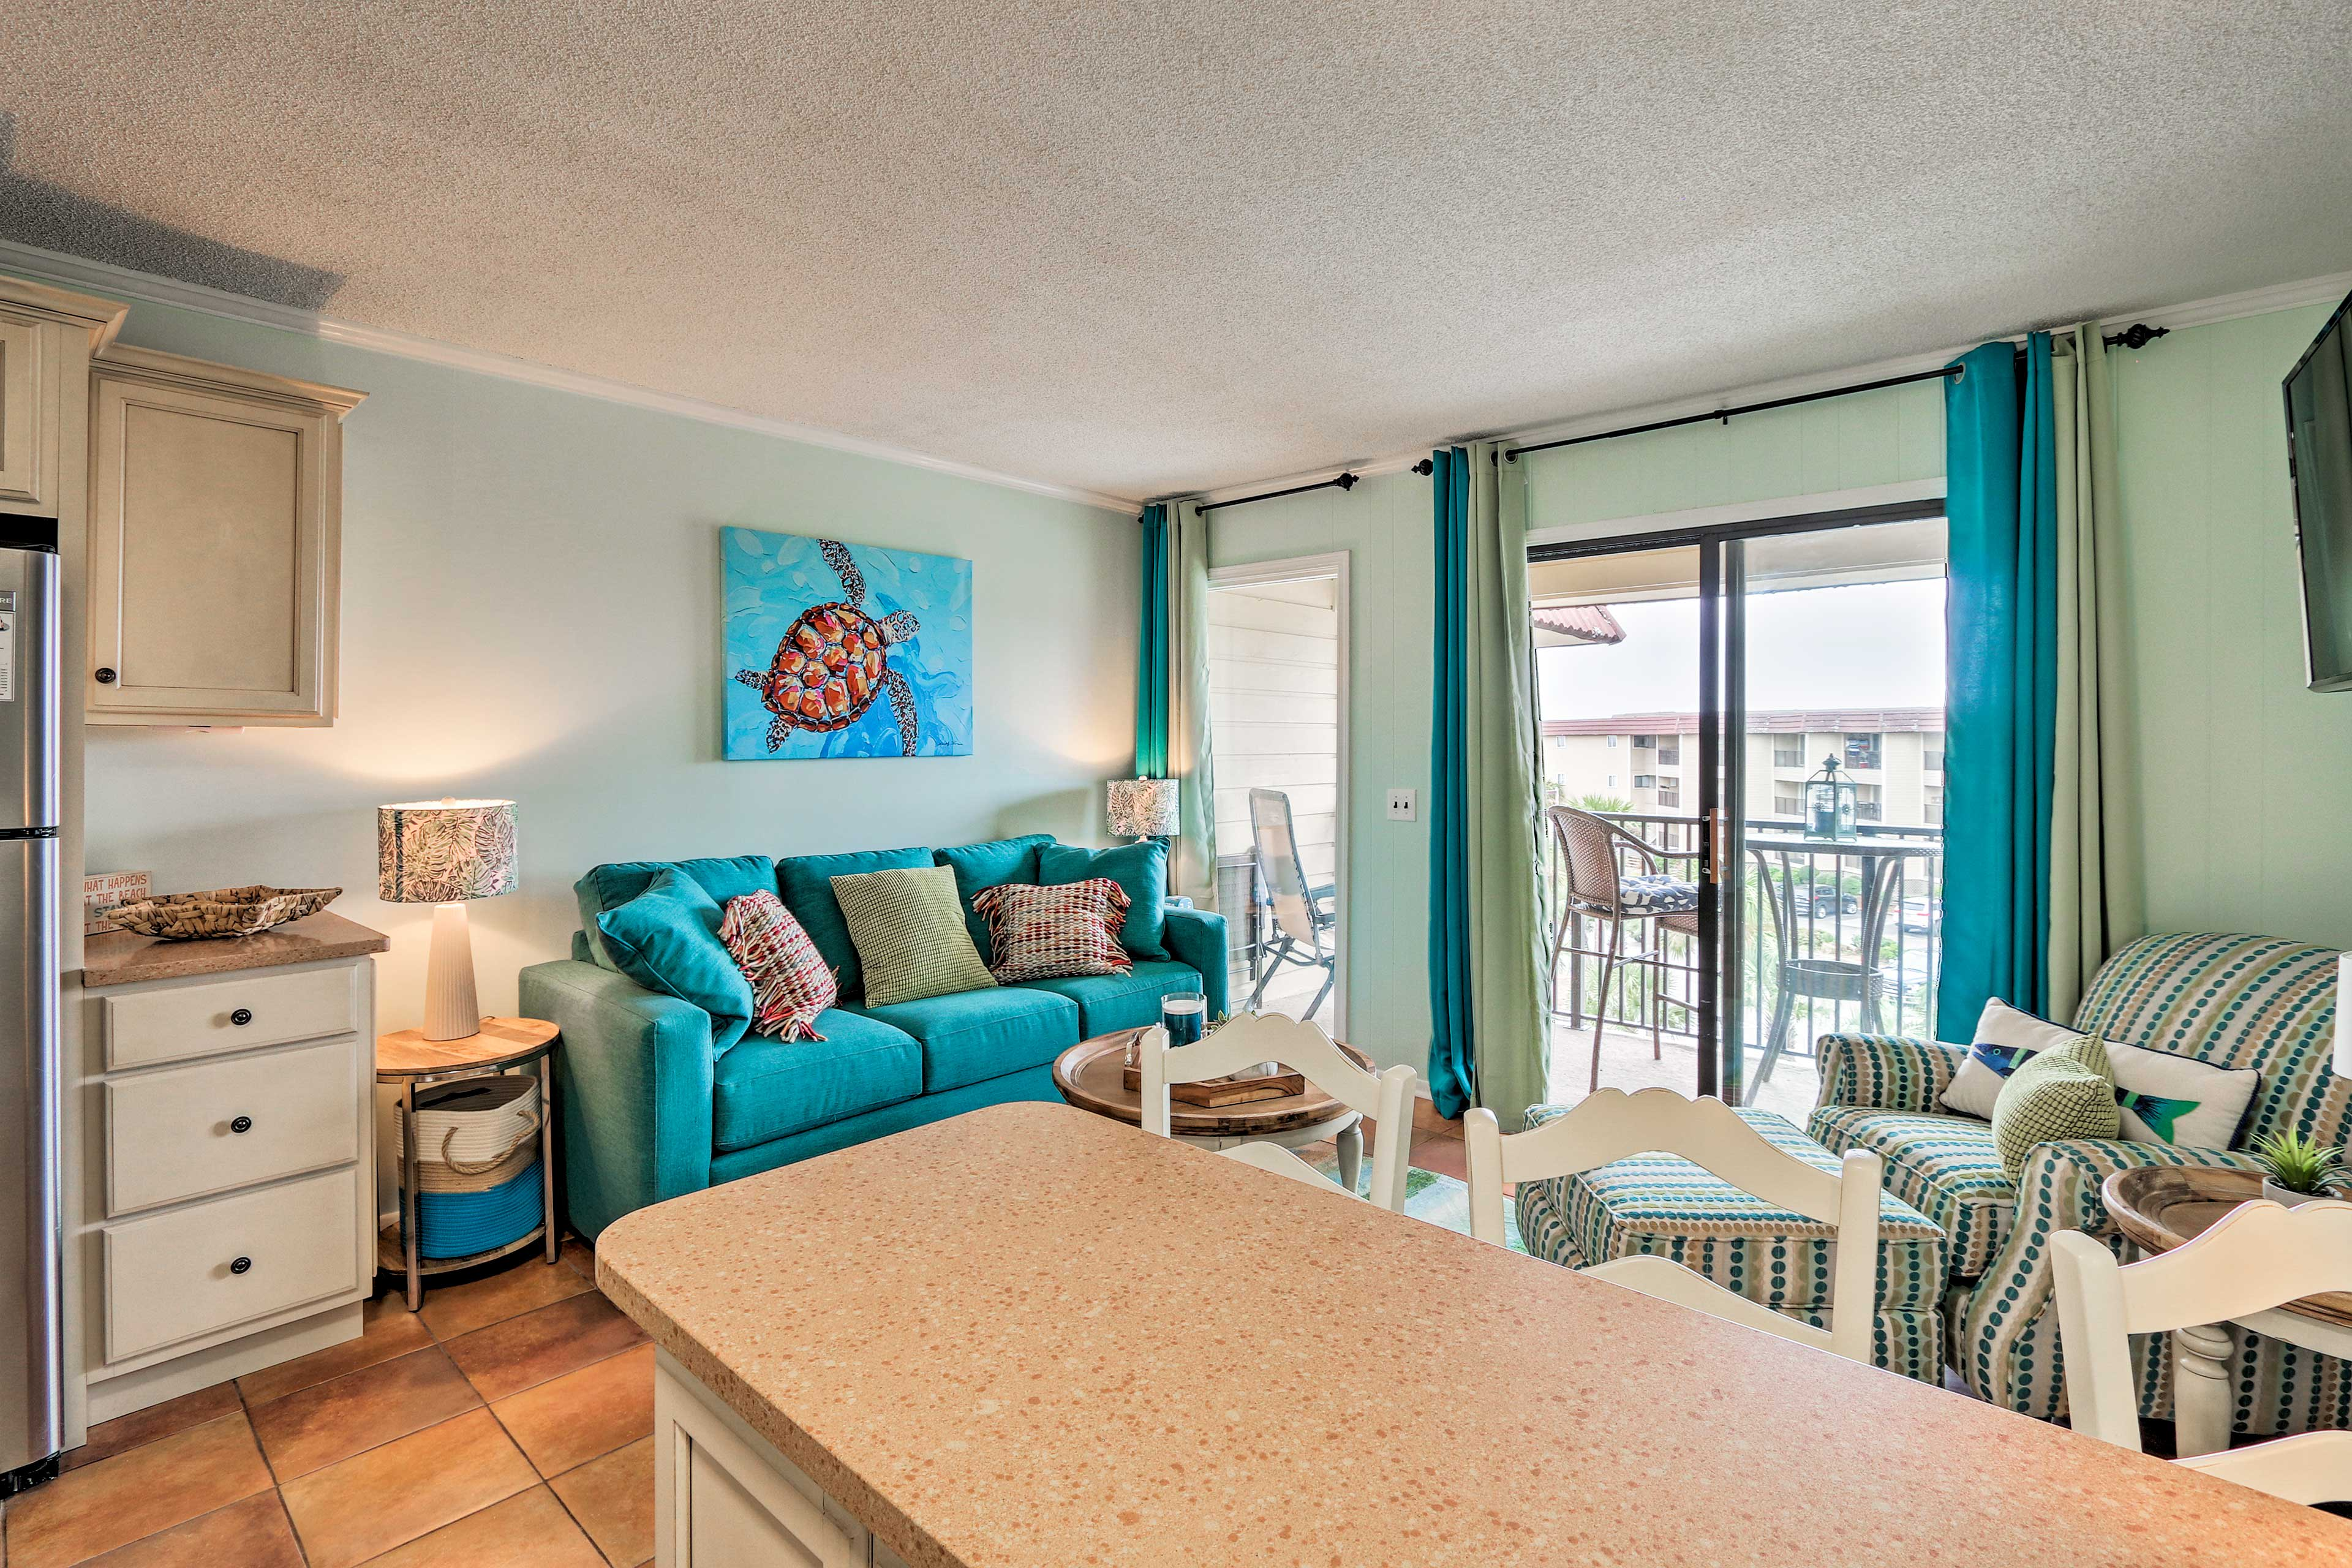 This cozy condo offers all the comforts of home.